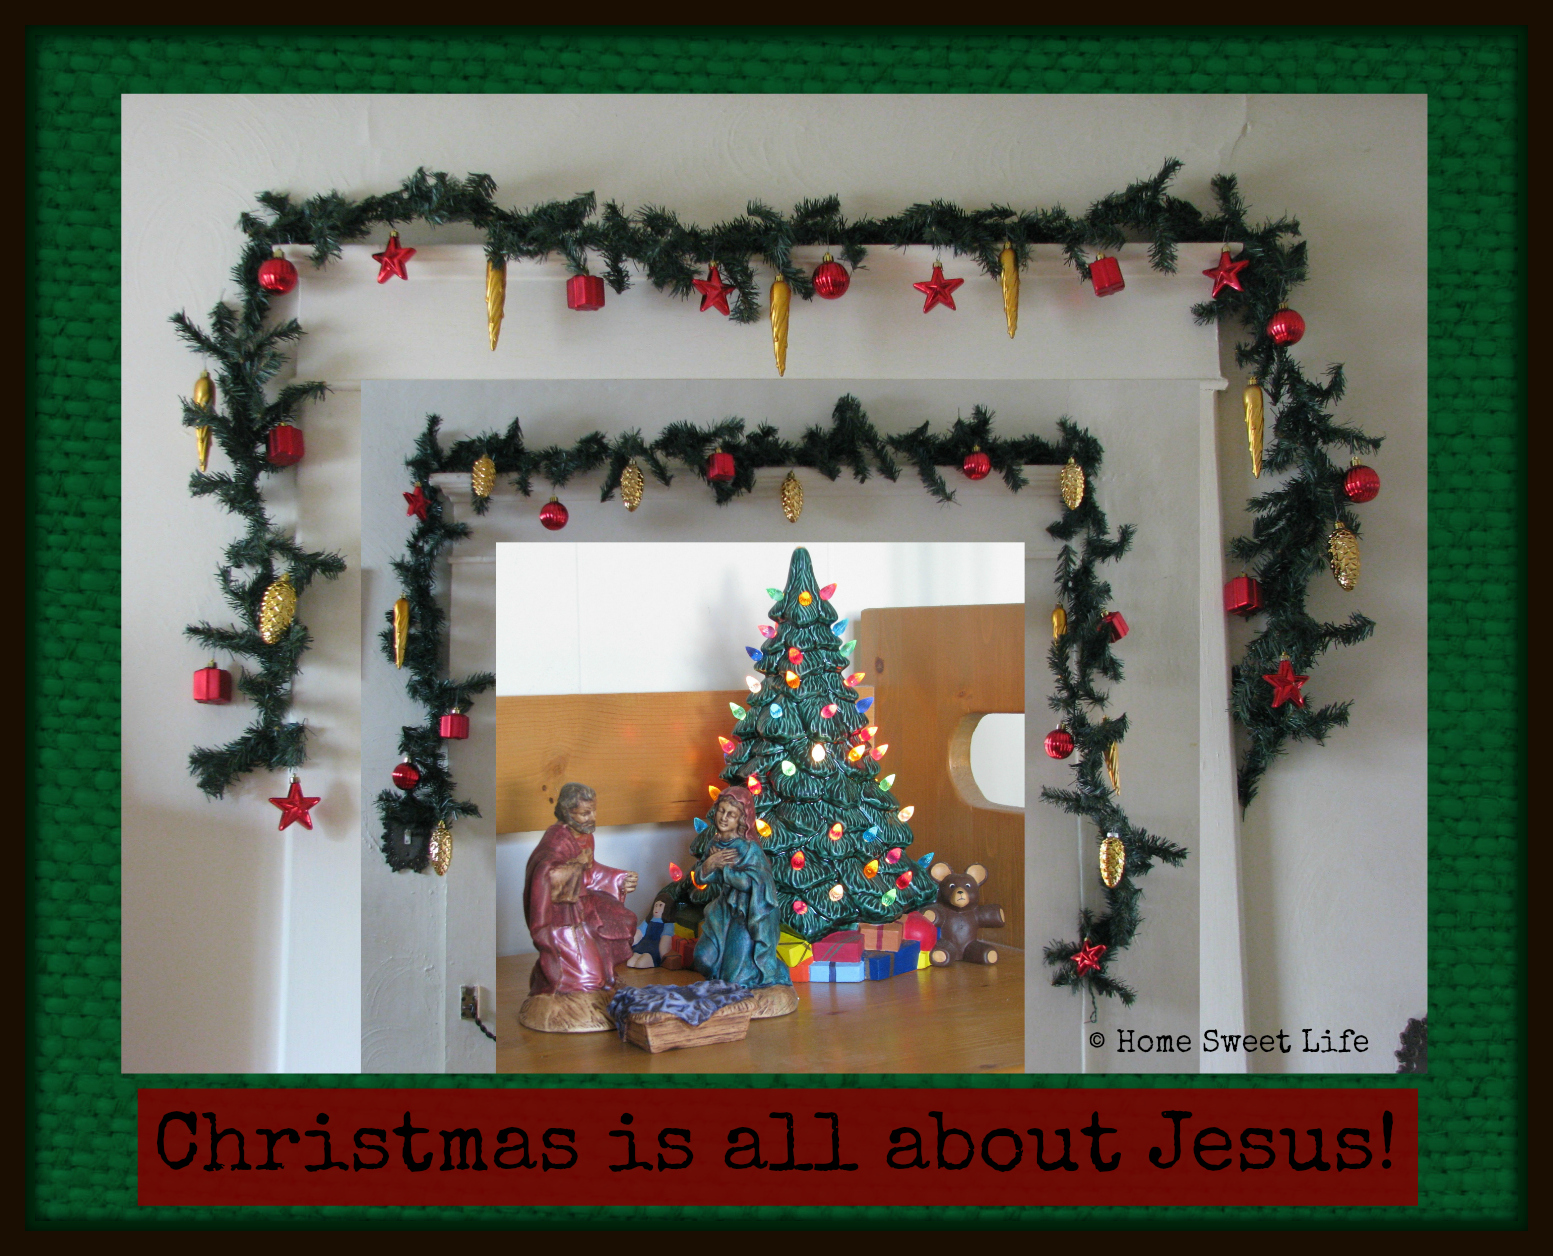 Christmas is abut Jesus